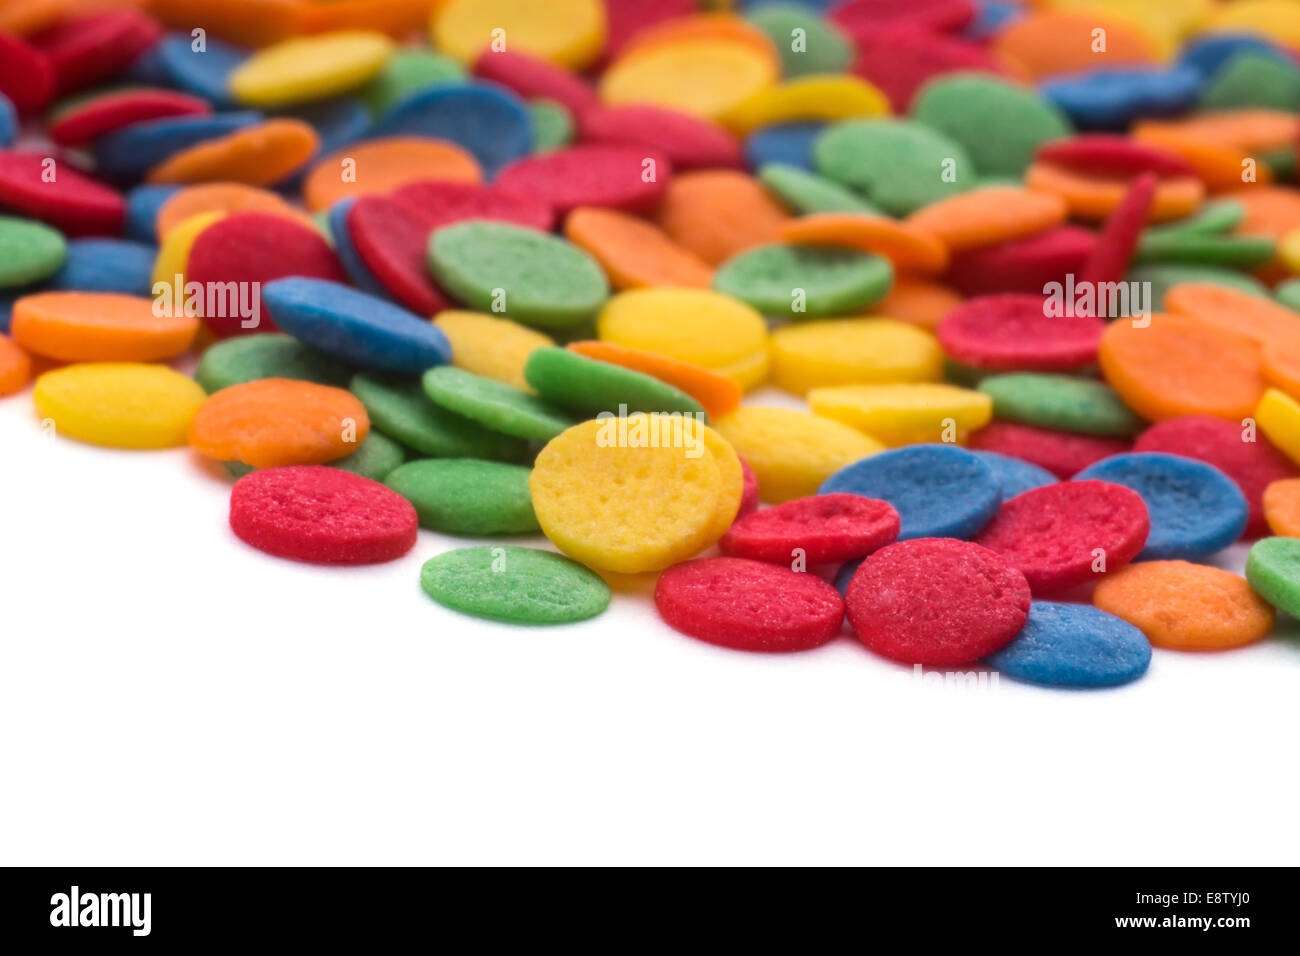 Colorful candy confetti on the white background - Stock Image